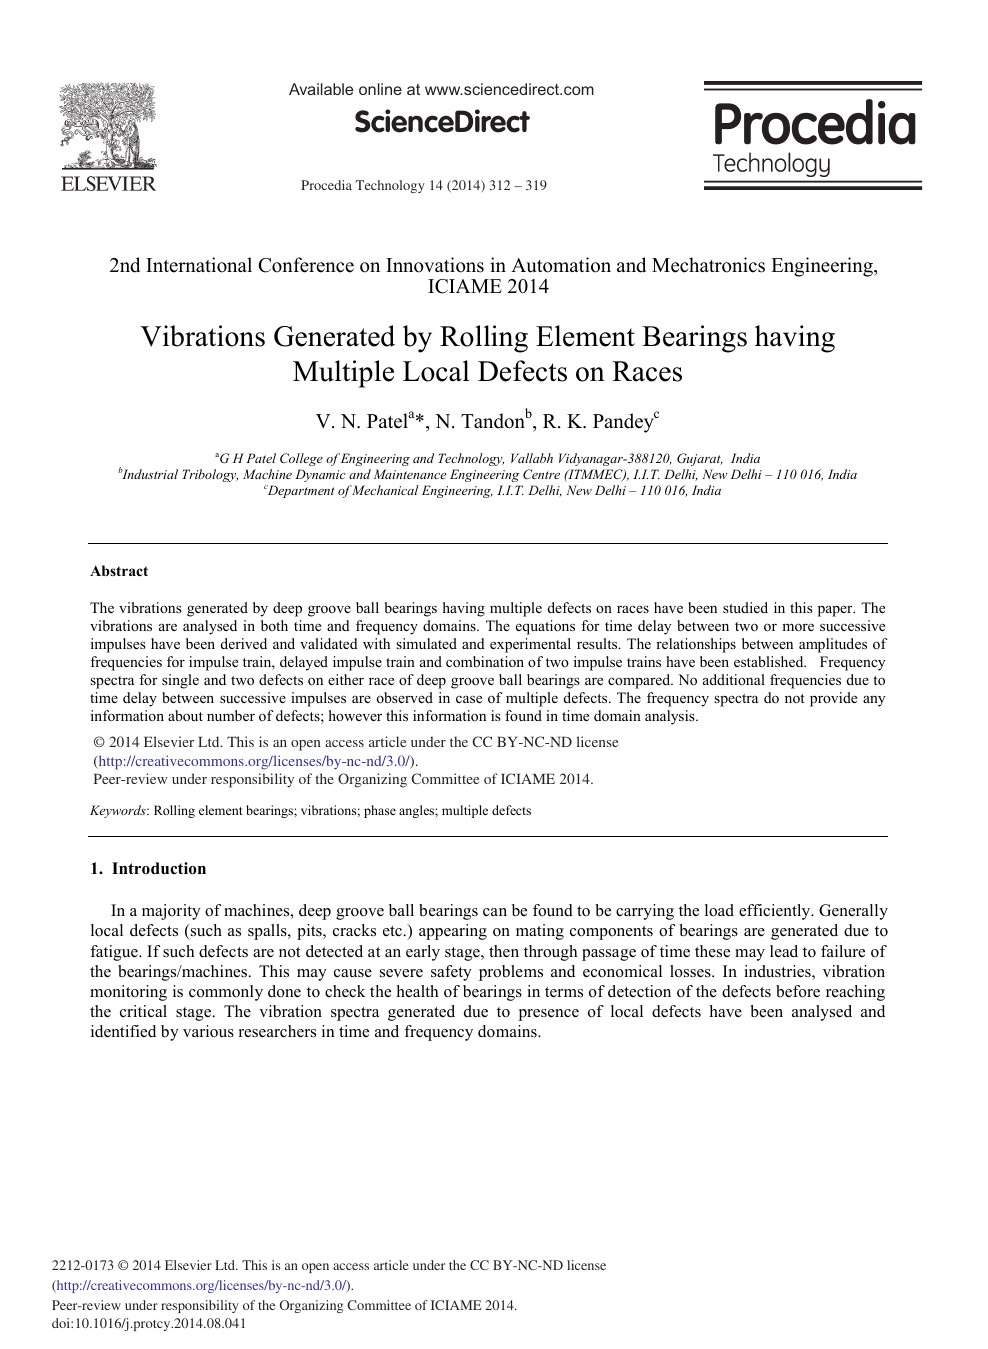 Vibrations Generated by Rolling Element Bearings having